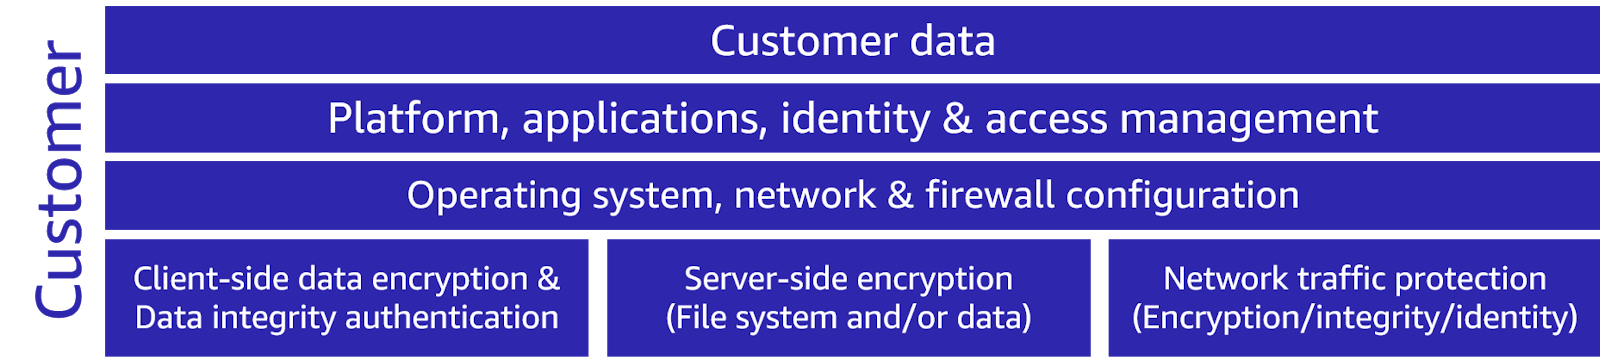 A graphic that lists the customer's responsibilities: customer data, platform, applications, identity and access management, operating system, network and firewall configuration client-side data encryption and data integrity authentication, server-side encryption (file system and/or data), and network traffic protection (encryption/integrity/identity)